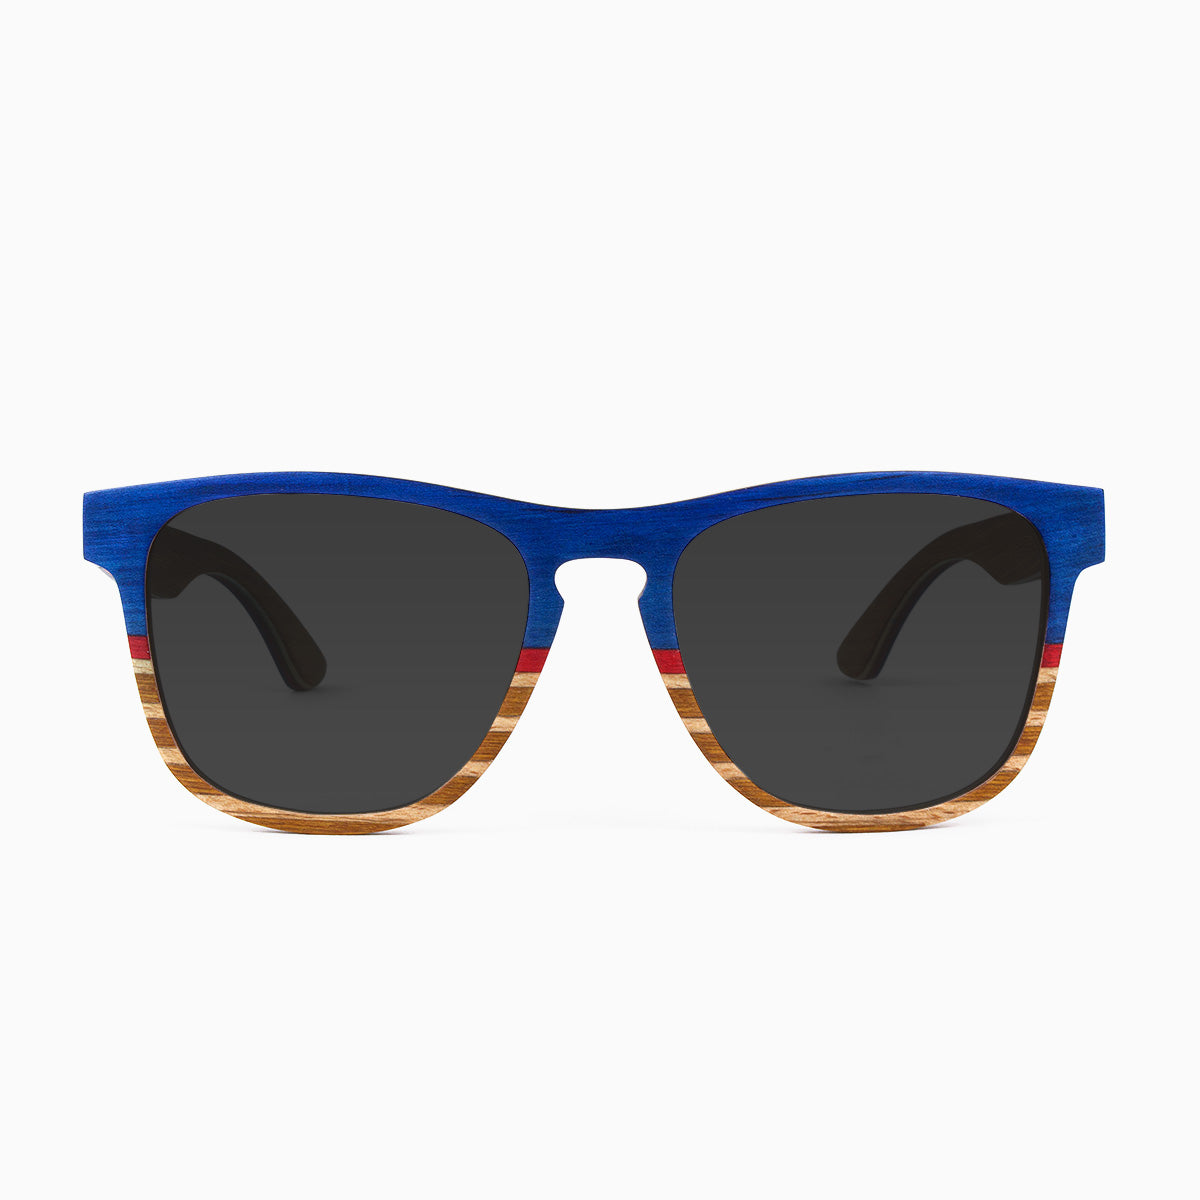 Sanibel - Maritime Wood Sunglasses